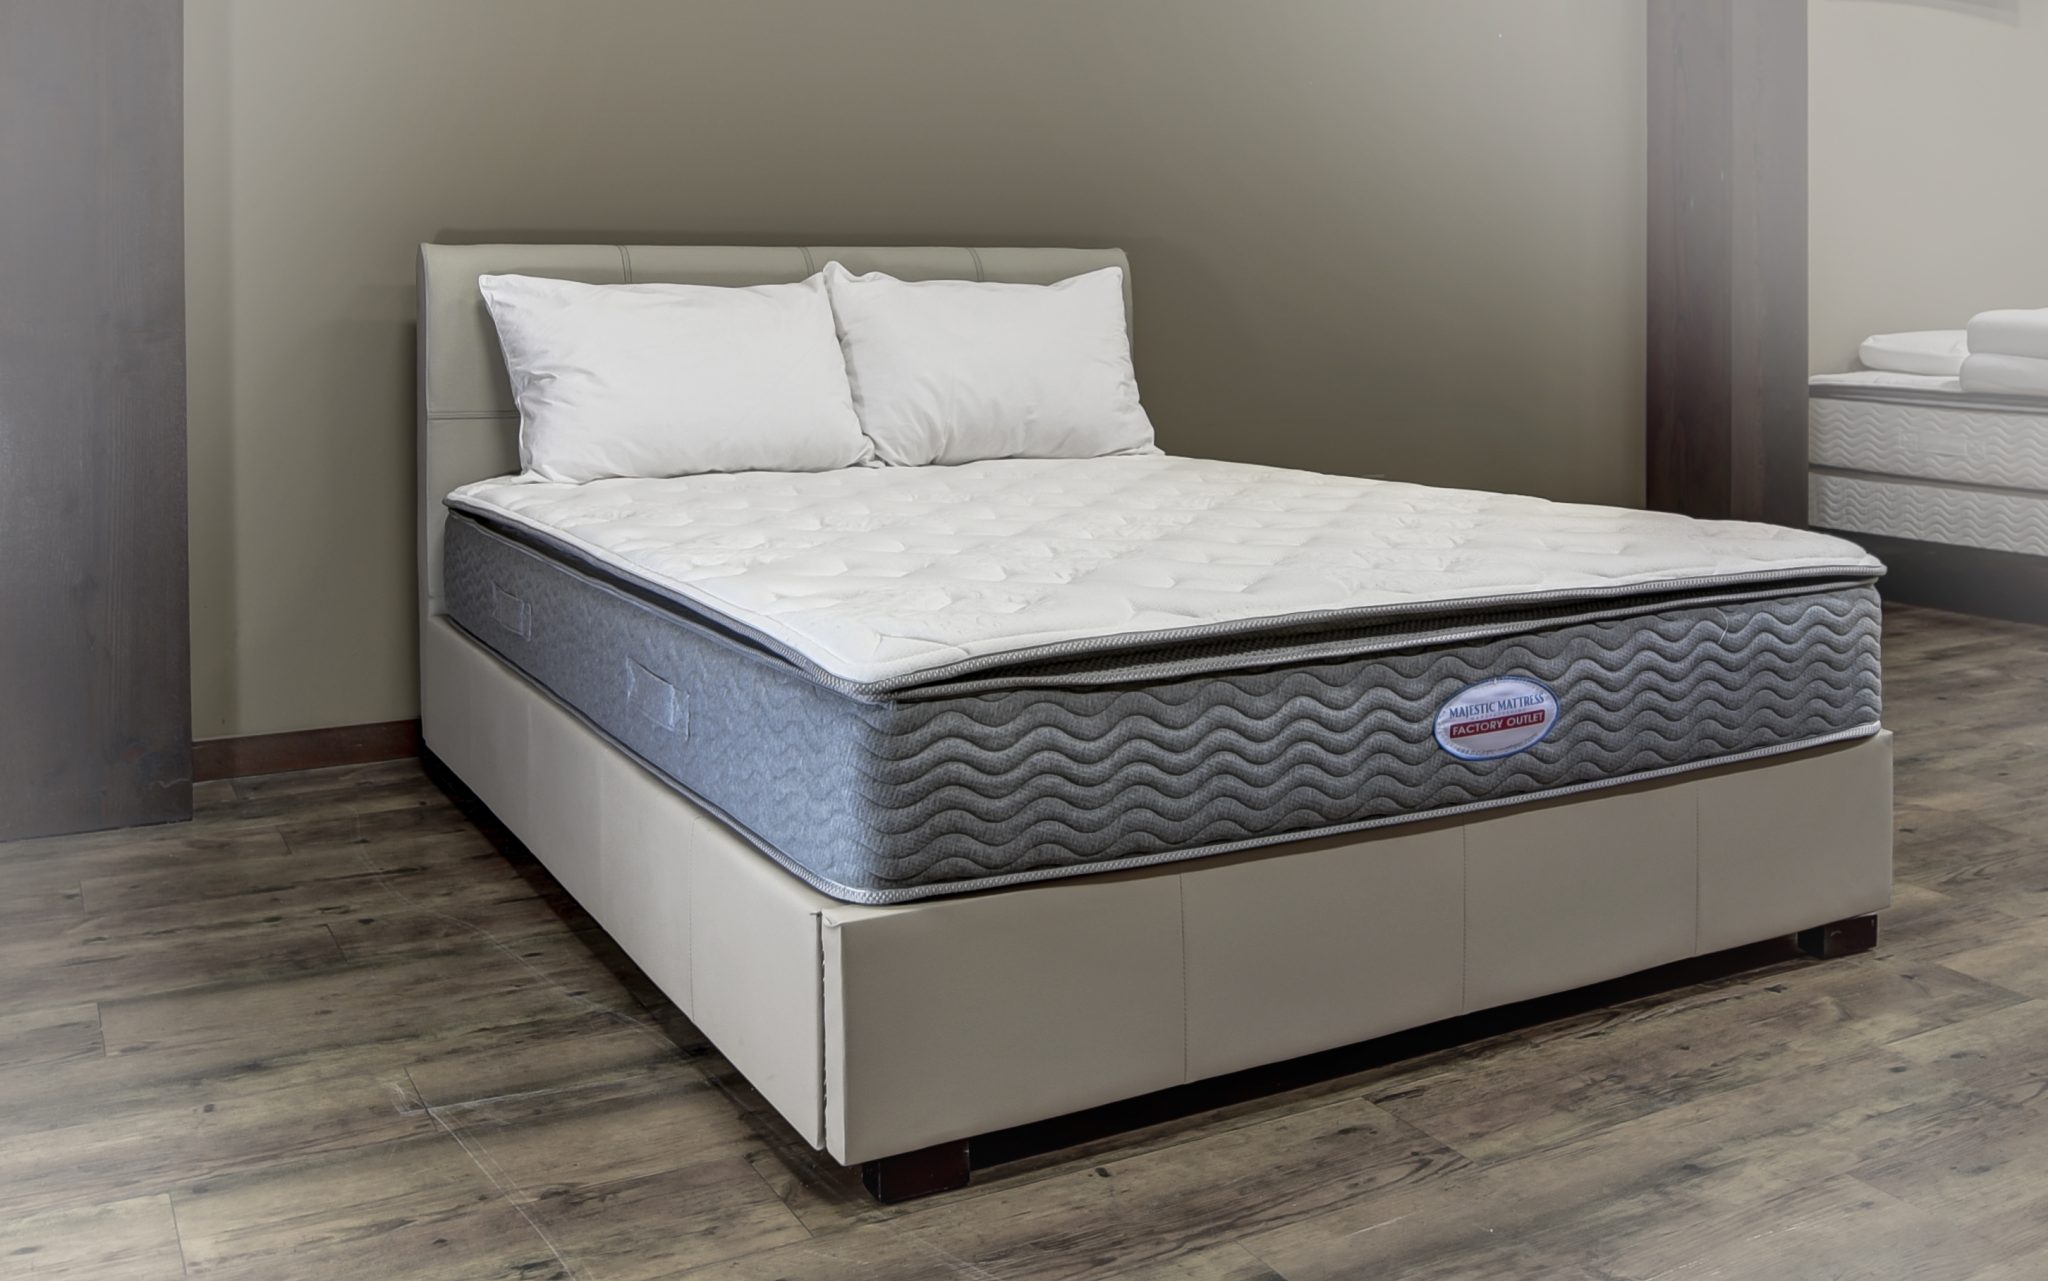 mattress pillow same mattresses top sultan spring sueno pocket luxury from topper